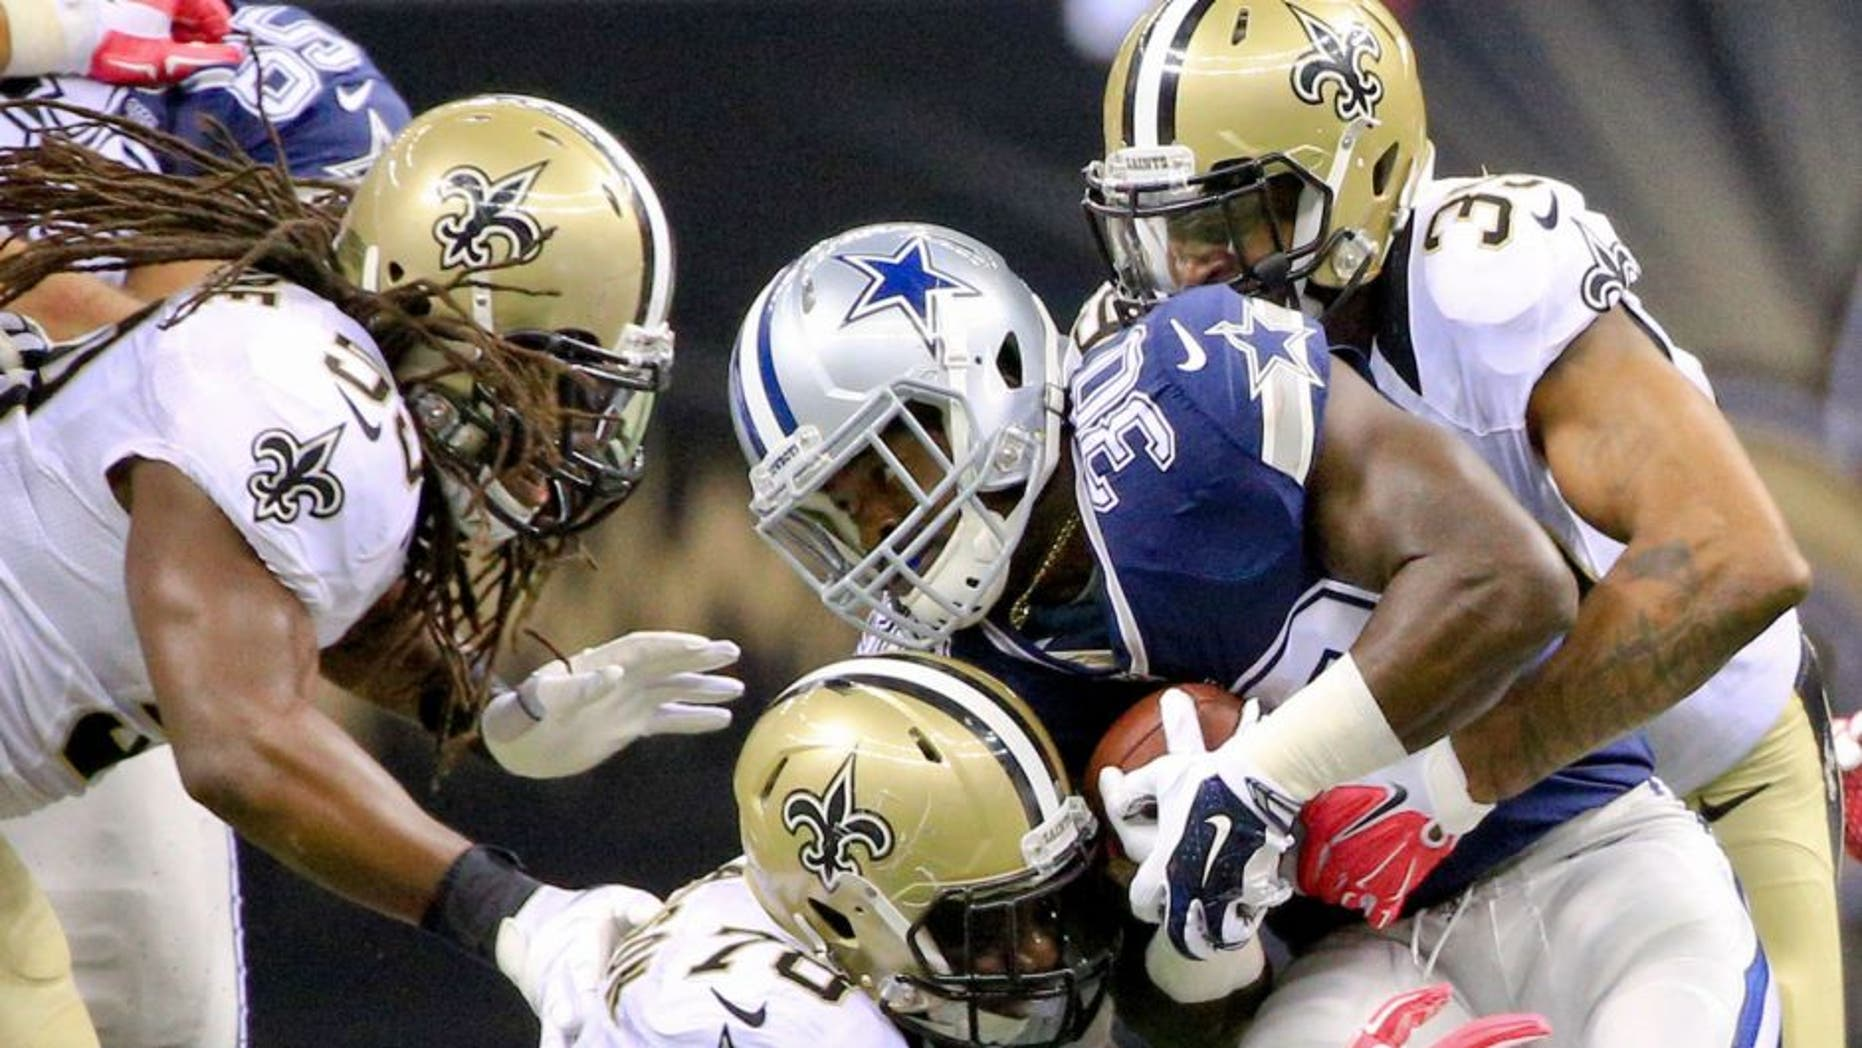 Oct 4, 2015; New Orleans, LA, USA; New Orleans Saints cornerback Brandon Browner (39) and defensive end Bobby Richardson (78) tackle Dallas Cowboys running back Christine Michael (30) during the fourth quarter at the Mercedes-Benz Superdome. The Saints won 26-20 in overtime. Mandatory Credit: Derick E. Hingle-USA TODAY Sports